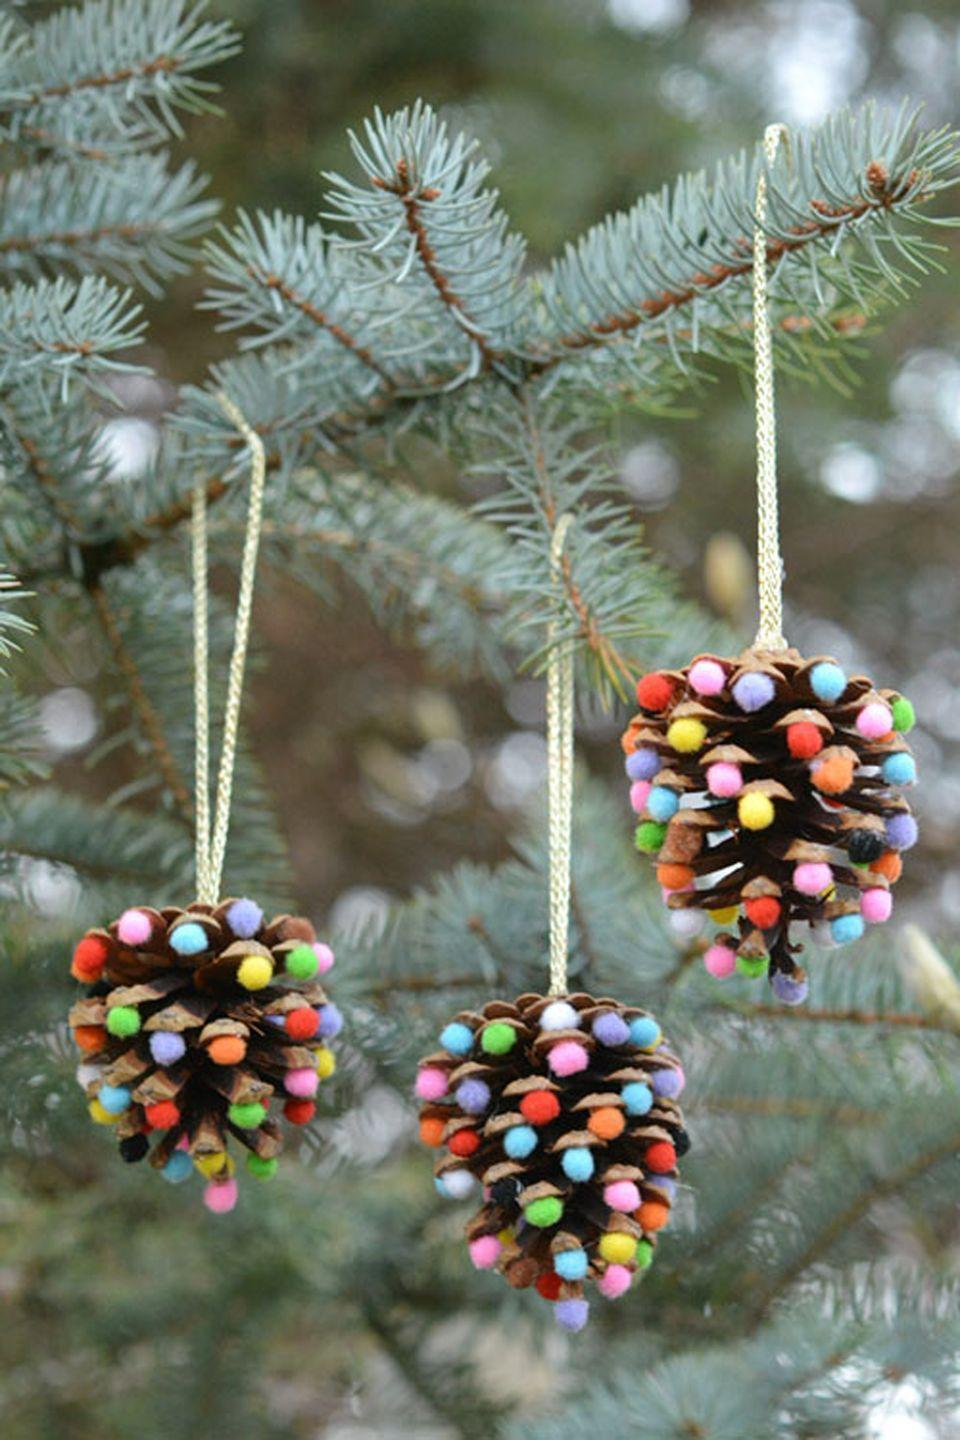 "<p>We're a fan of any craft that uses pom poms.</p><p><strong>Get the tutorial at <a href=""https://onelittleproject.com/pom-poms-and-pinecones-christmas-ornaments/"" rel=""nofollow noopener"" target=""_blank"" data-ylk=""slk:One Little Project"" class=""link rapid-noclick-resp"">One Little Project</a>.</strong></p>"